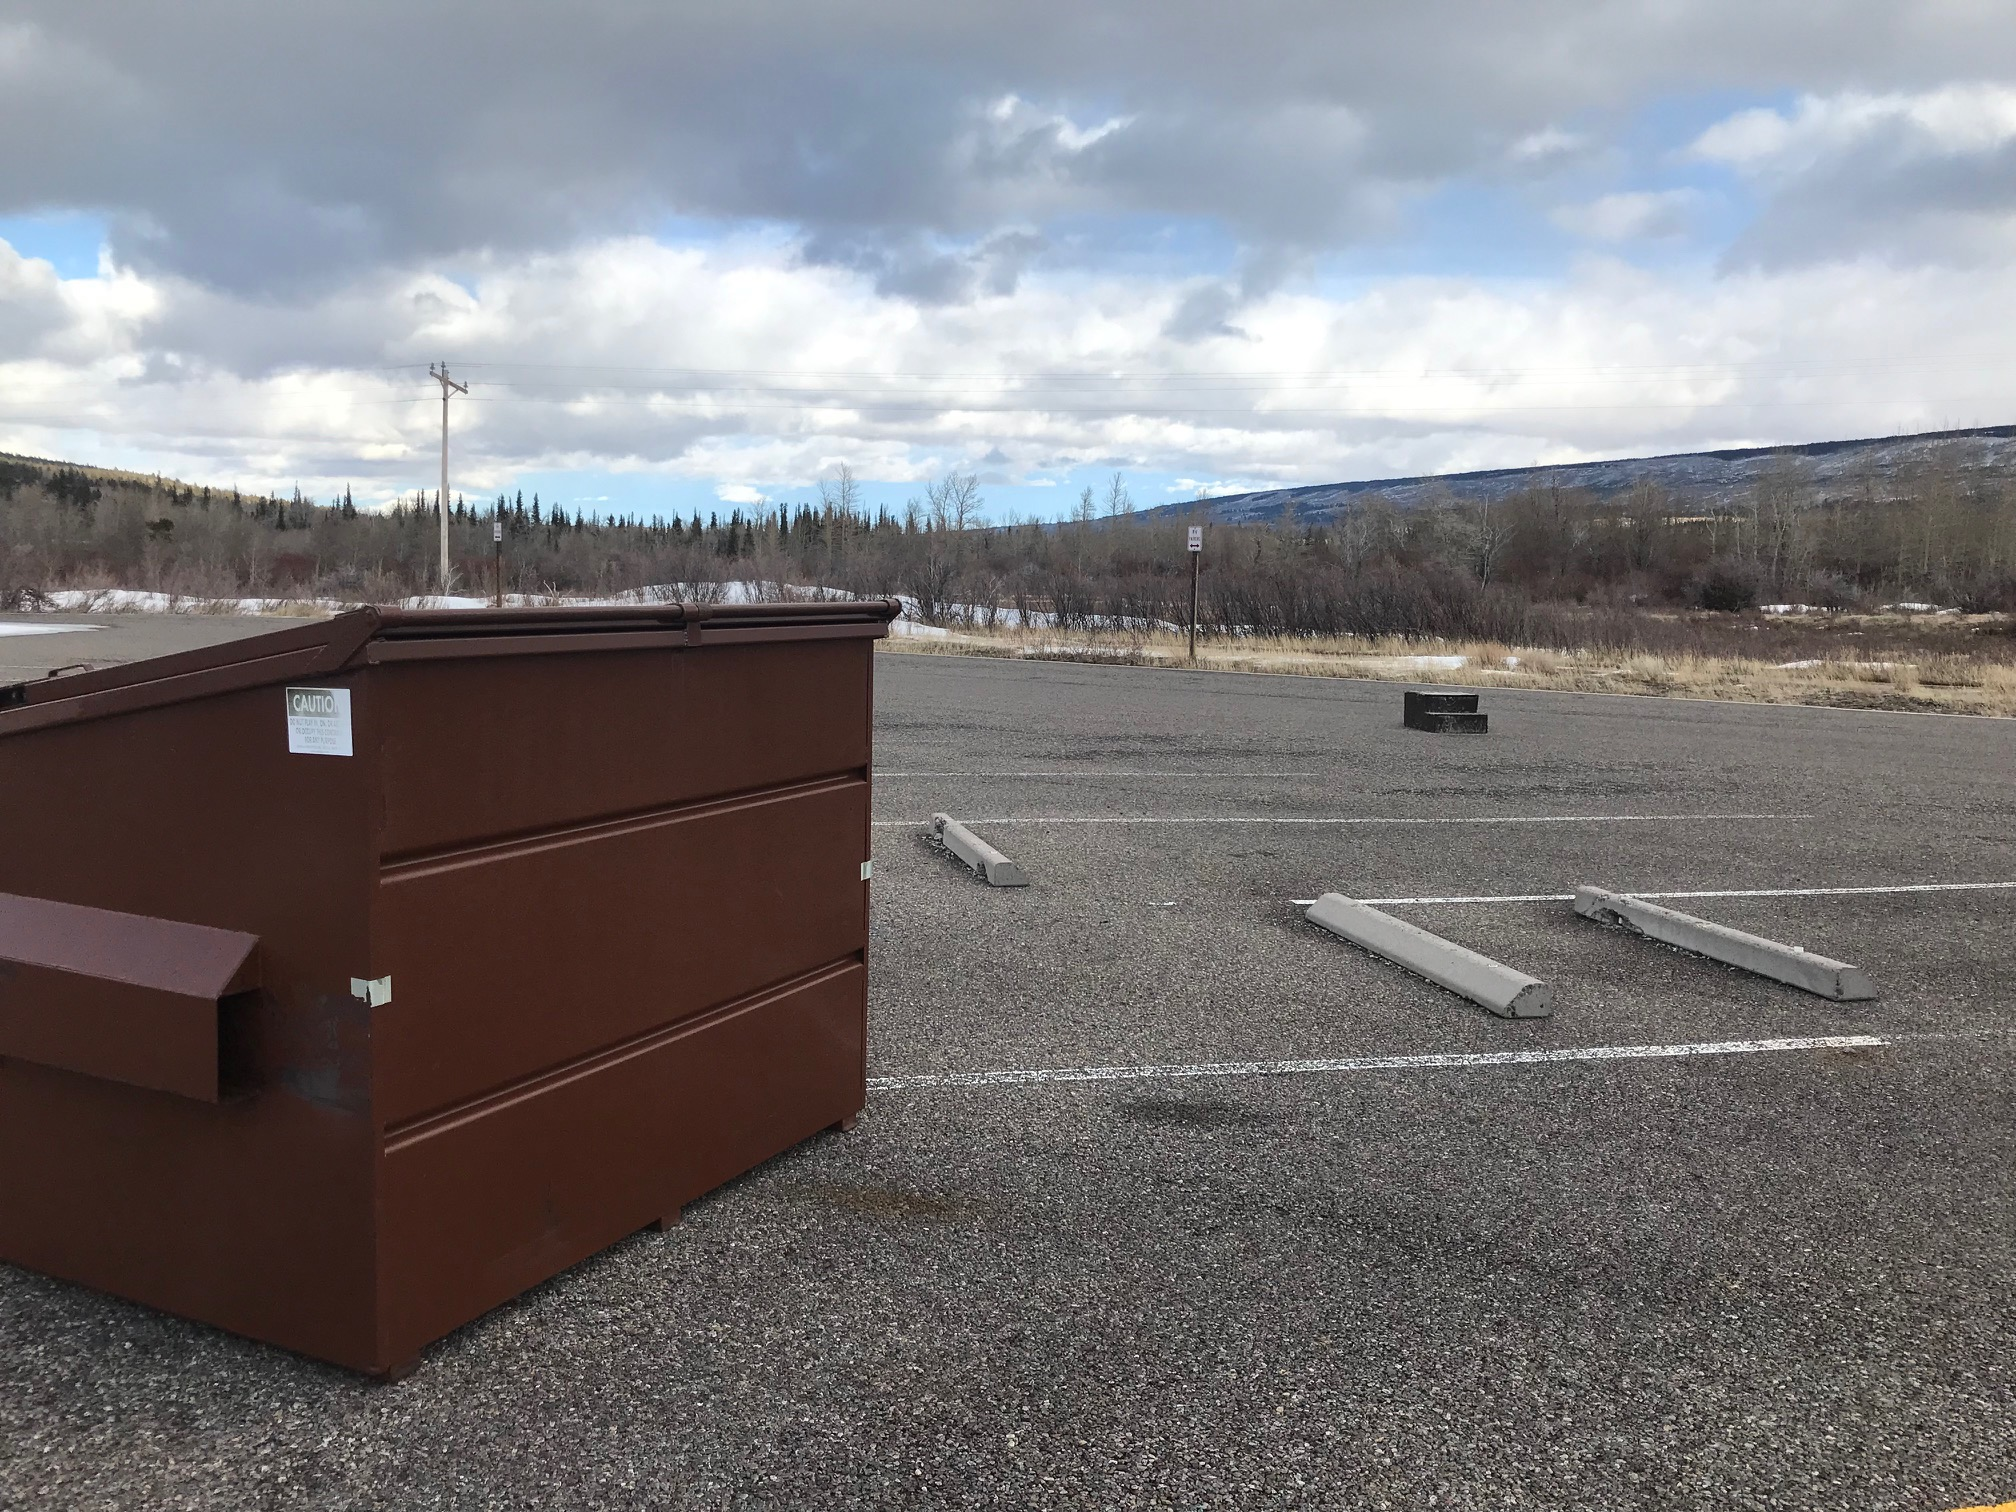 A wayward wooden stepstool was blown into the parking lot, but there were no obvious trash issues otherwise.